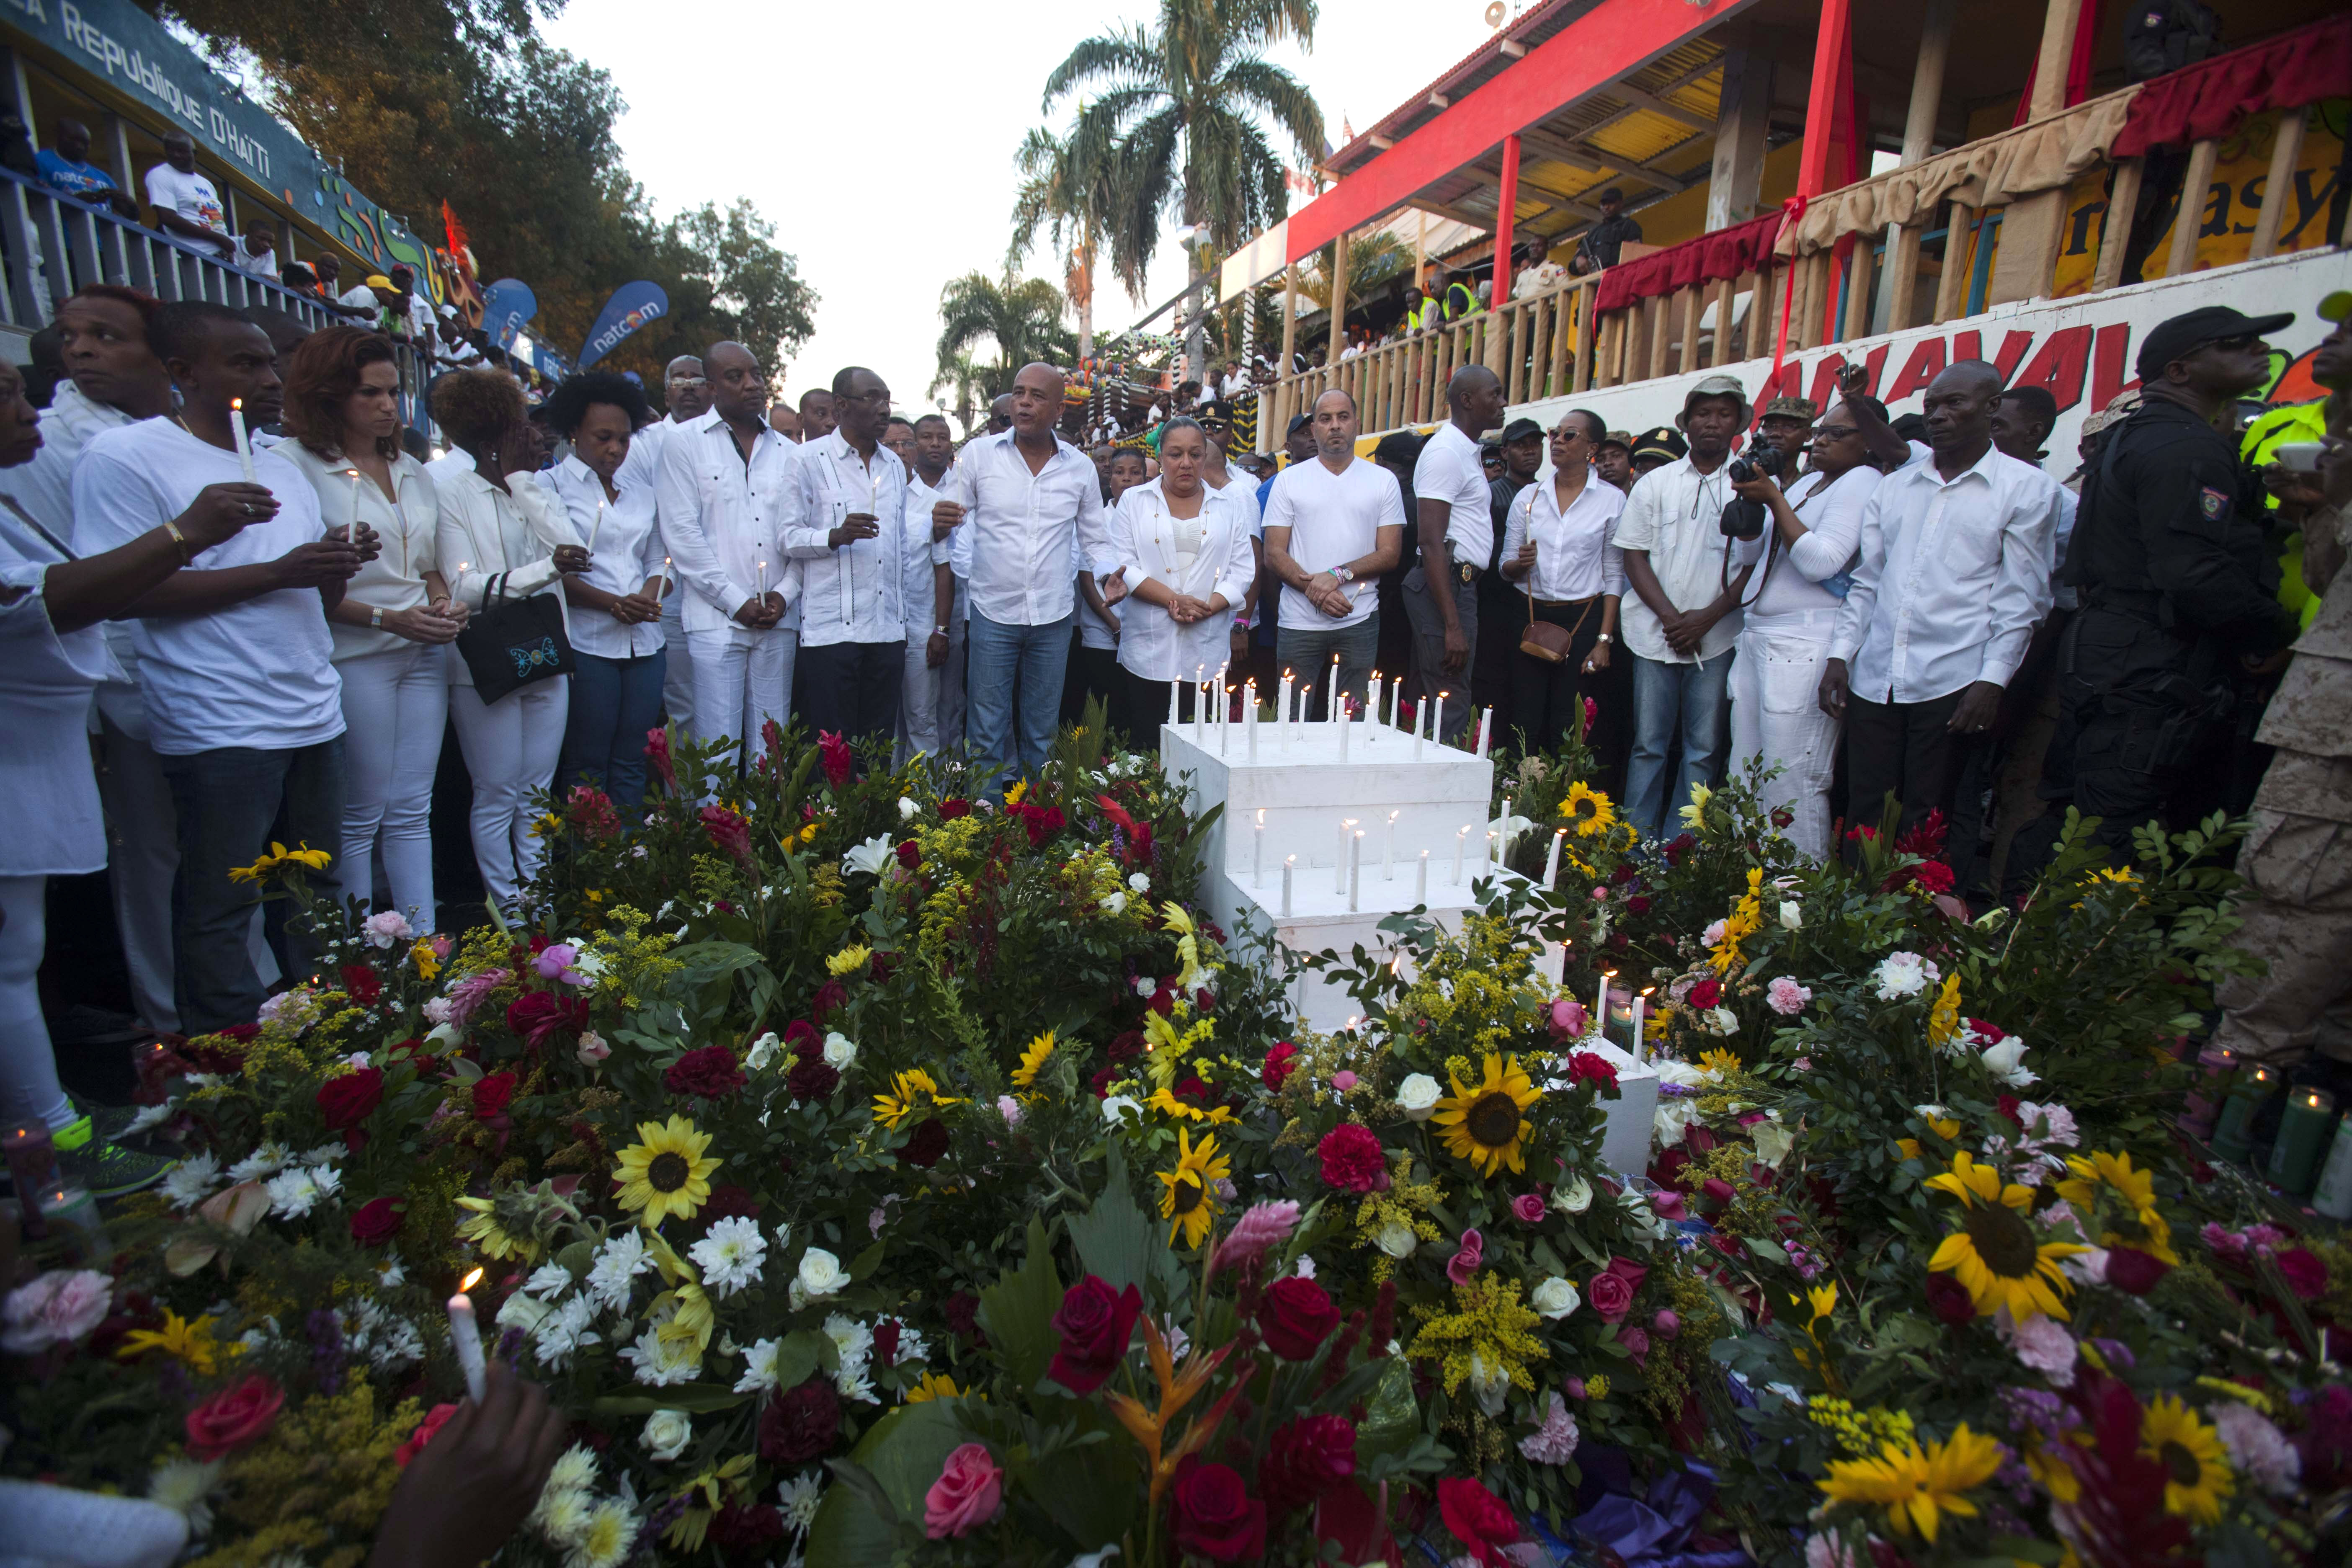 Haiti's President Michel Martelly, center left, and first lady Sophia Martelly, right center, stand at a memorial in Port-au-Prince, Haiti, Feb. 17, 2015